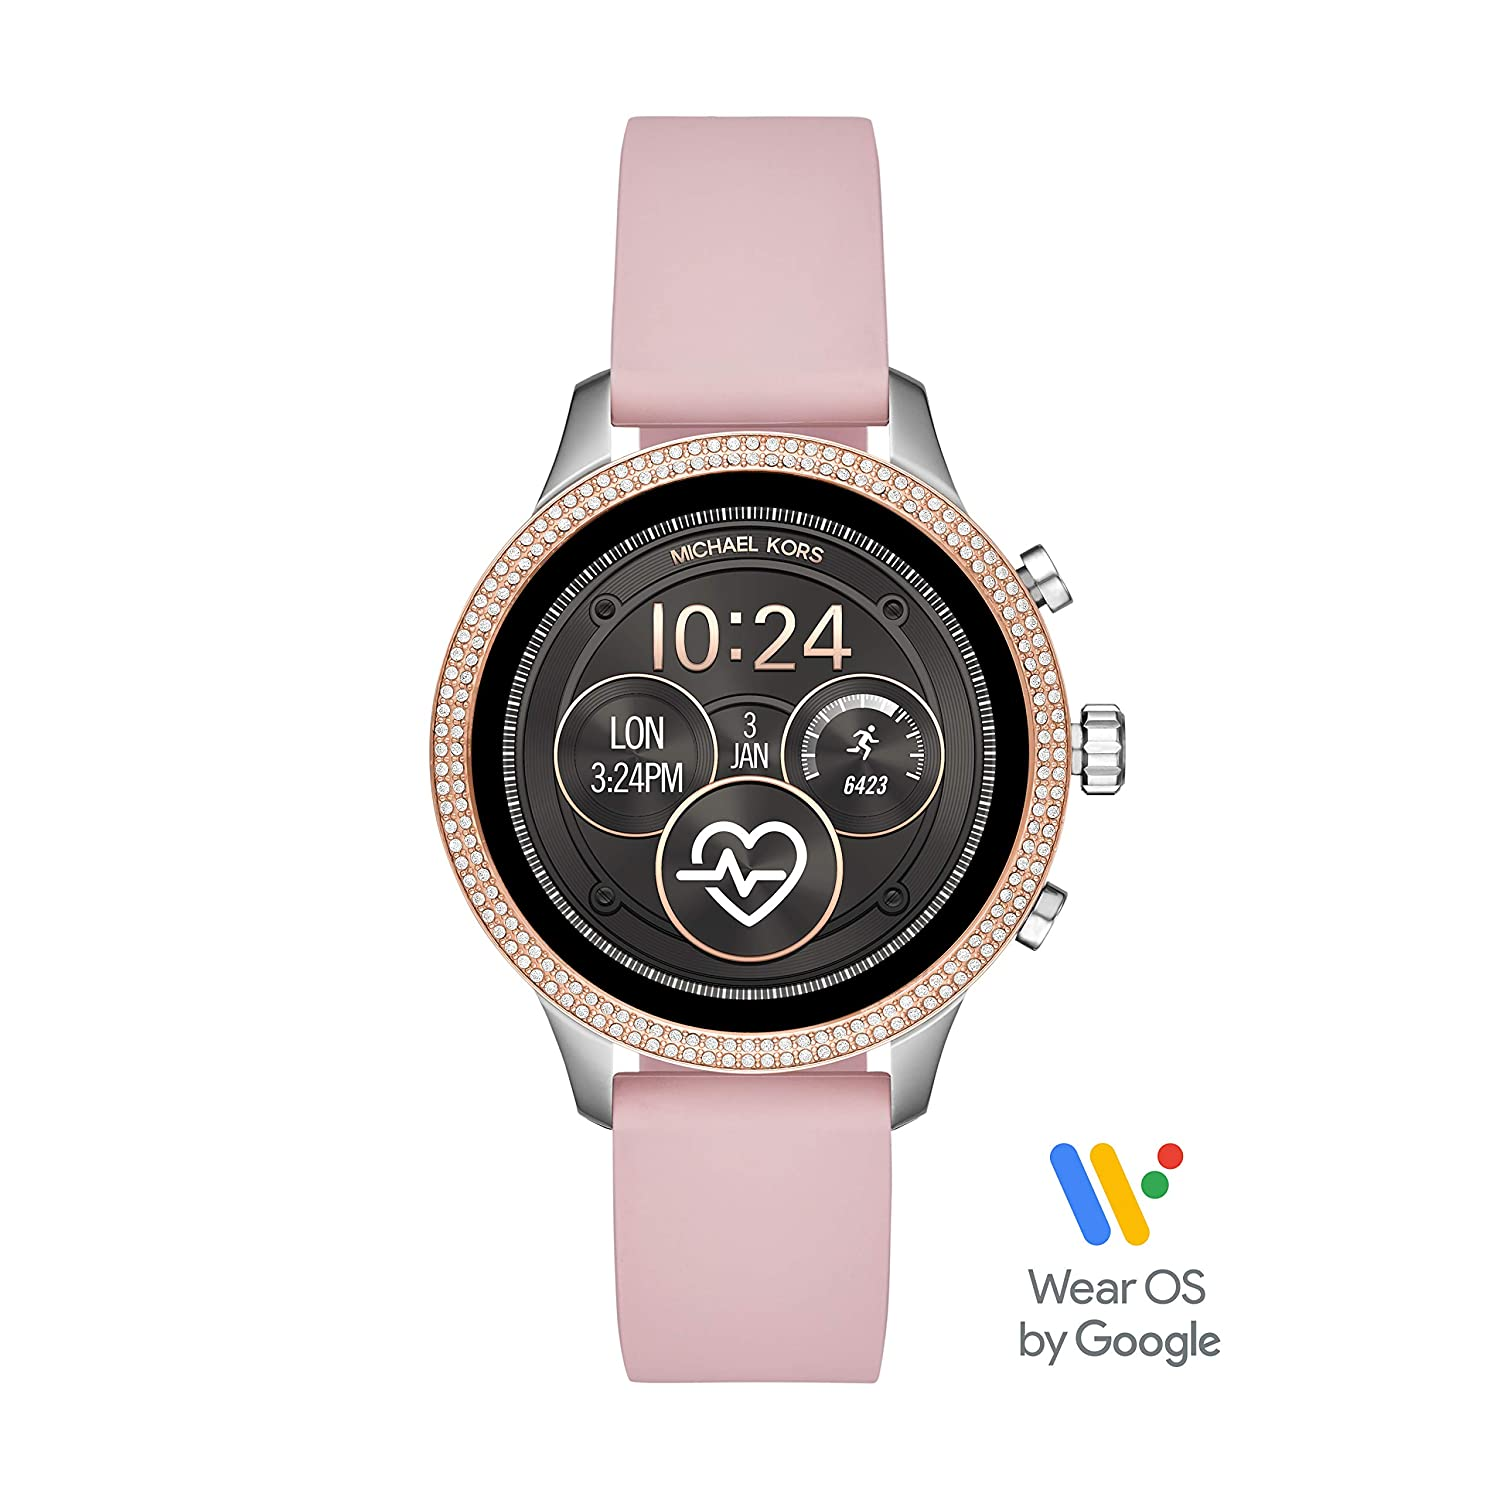 93f025309c Amazon.com: Michael Kors Access Womens Runway Touchscreen Smartwatch  Stainless Steel Leather watch, Pink, MKT5055: Computers & Accessories